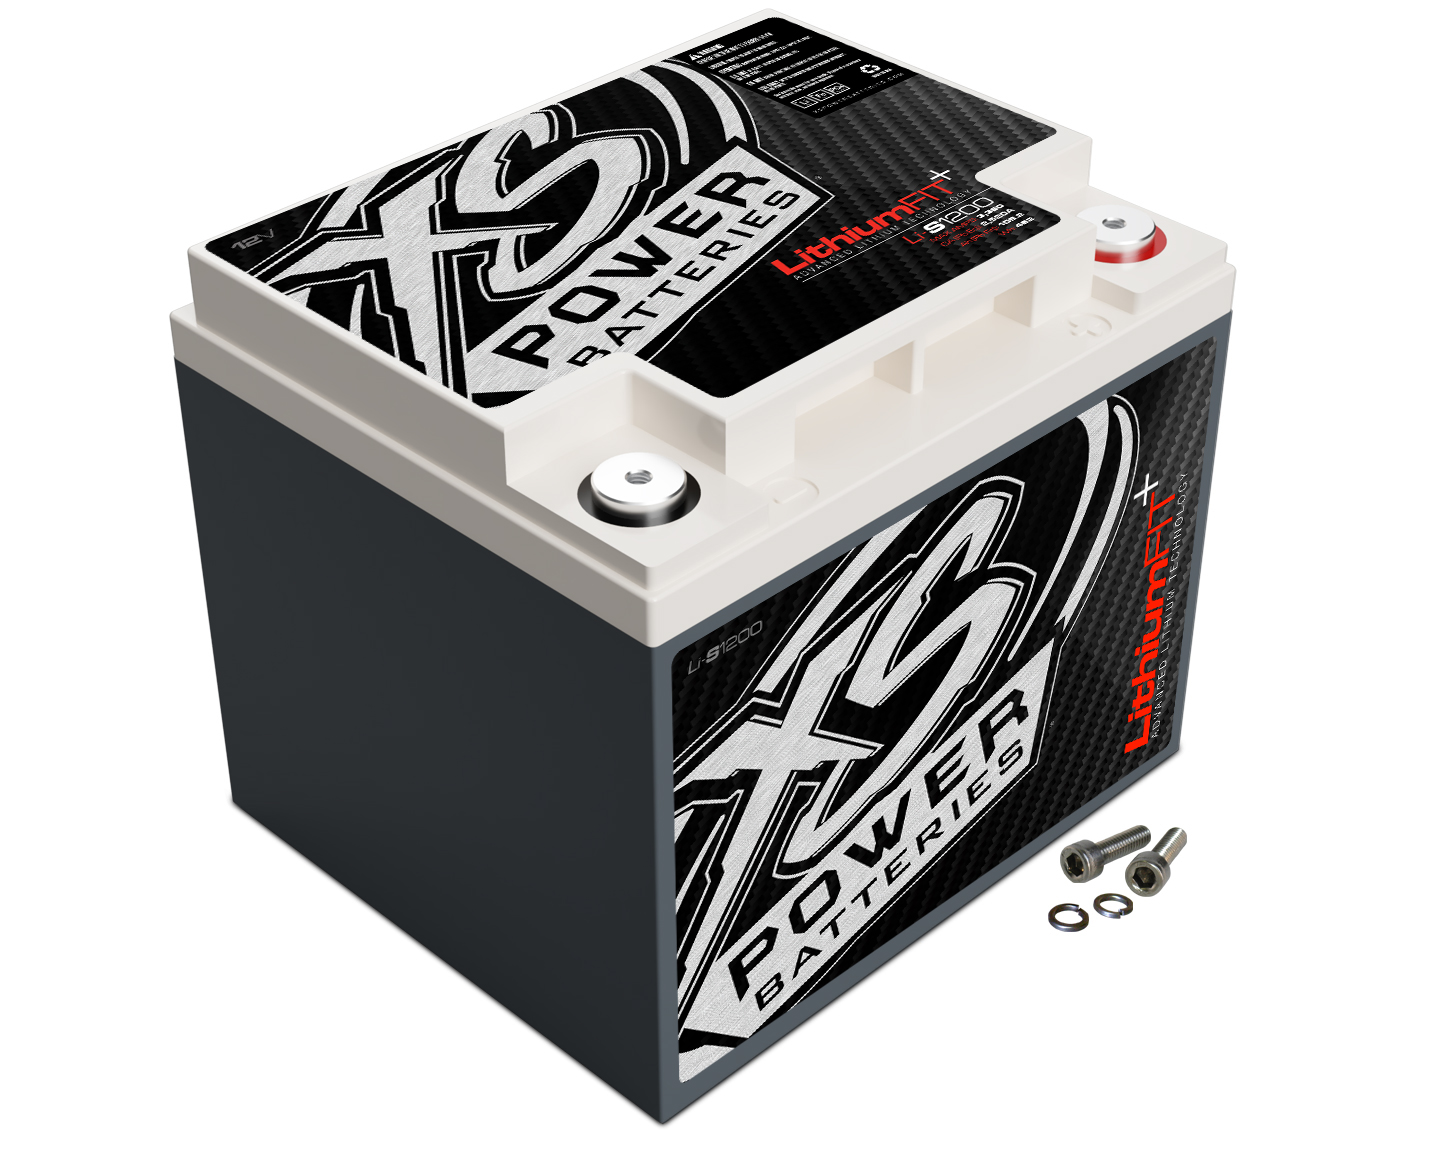 XS Power LI-S1200 12V 36.4 Amp Hours 7000 Watts Lithium Racing Battery For Cars